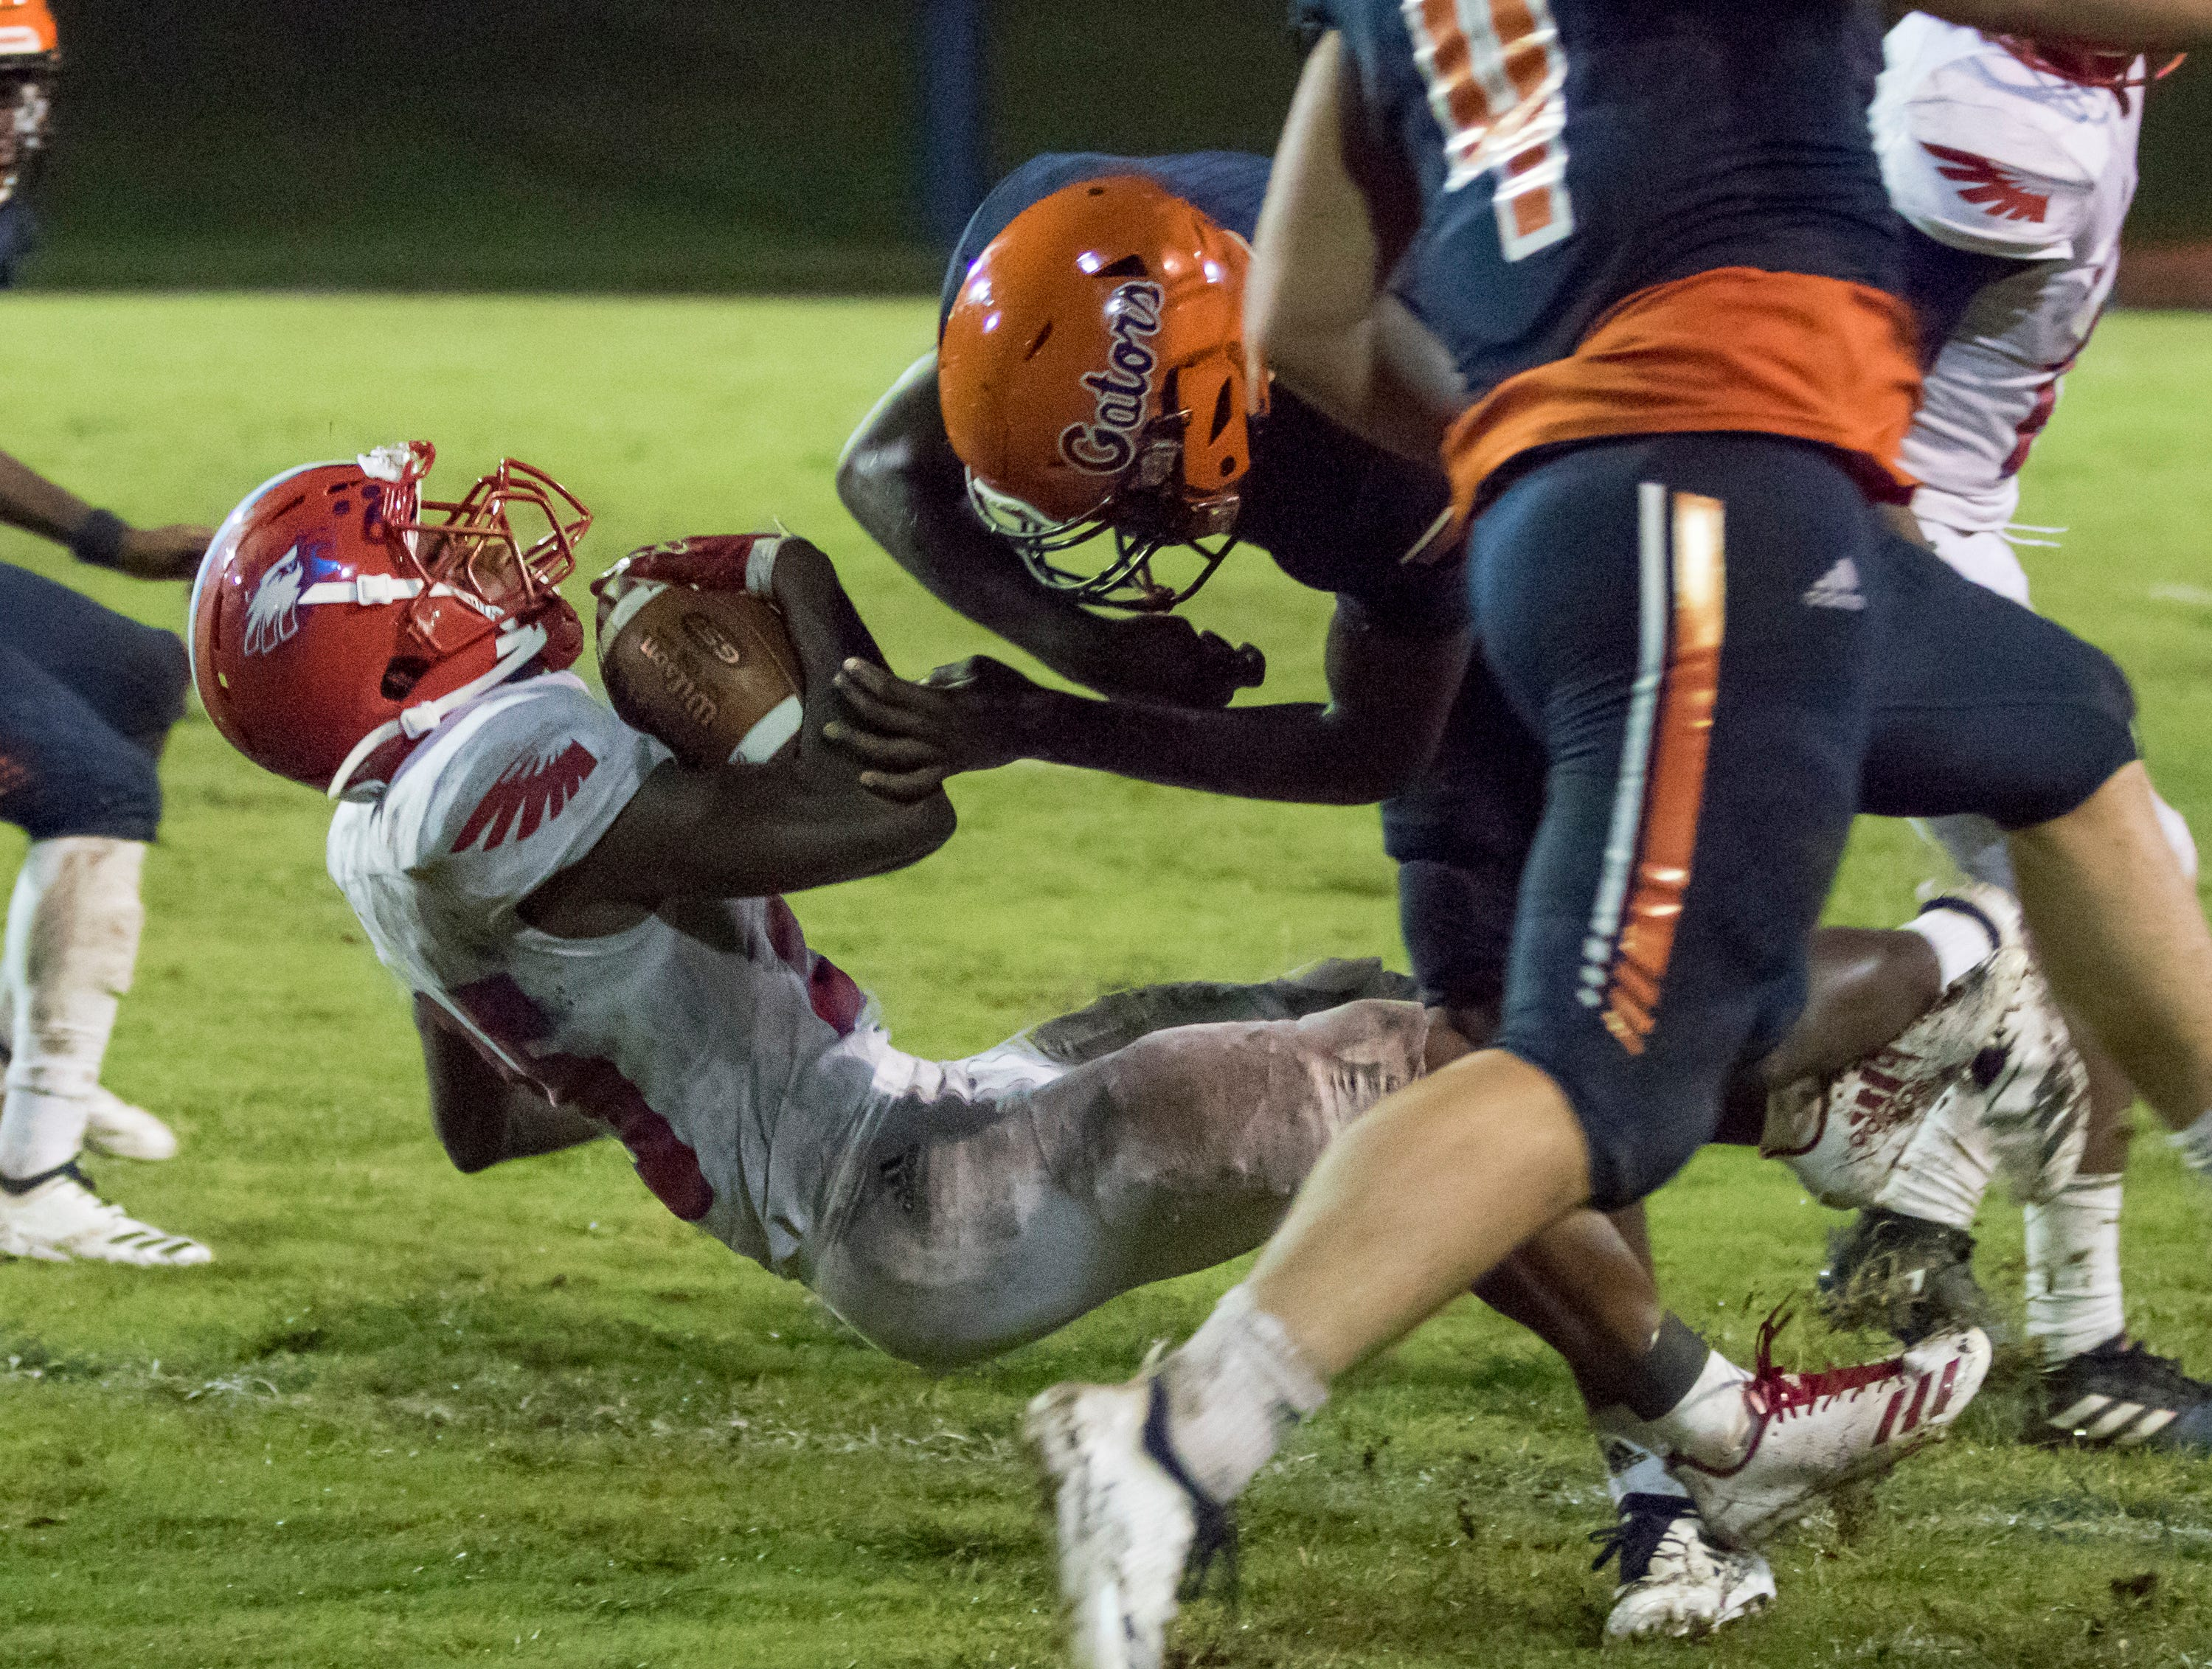 Jesse Saulsberry (12) puts a stop to a long run by Anwar Lewis (25) with a big hit during the Pine Forest vs Escambia football game at Escambia High School in Pensacola on Friday, September 28, 2018.